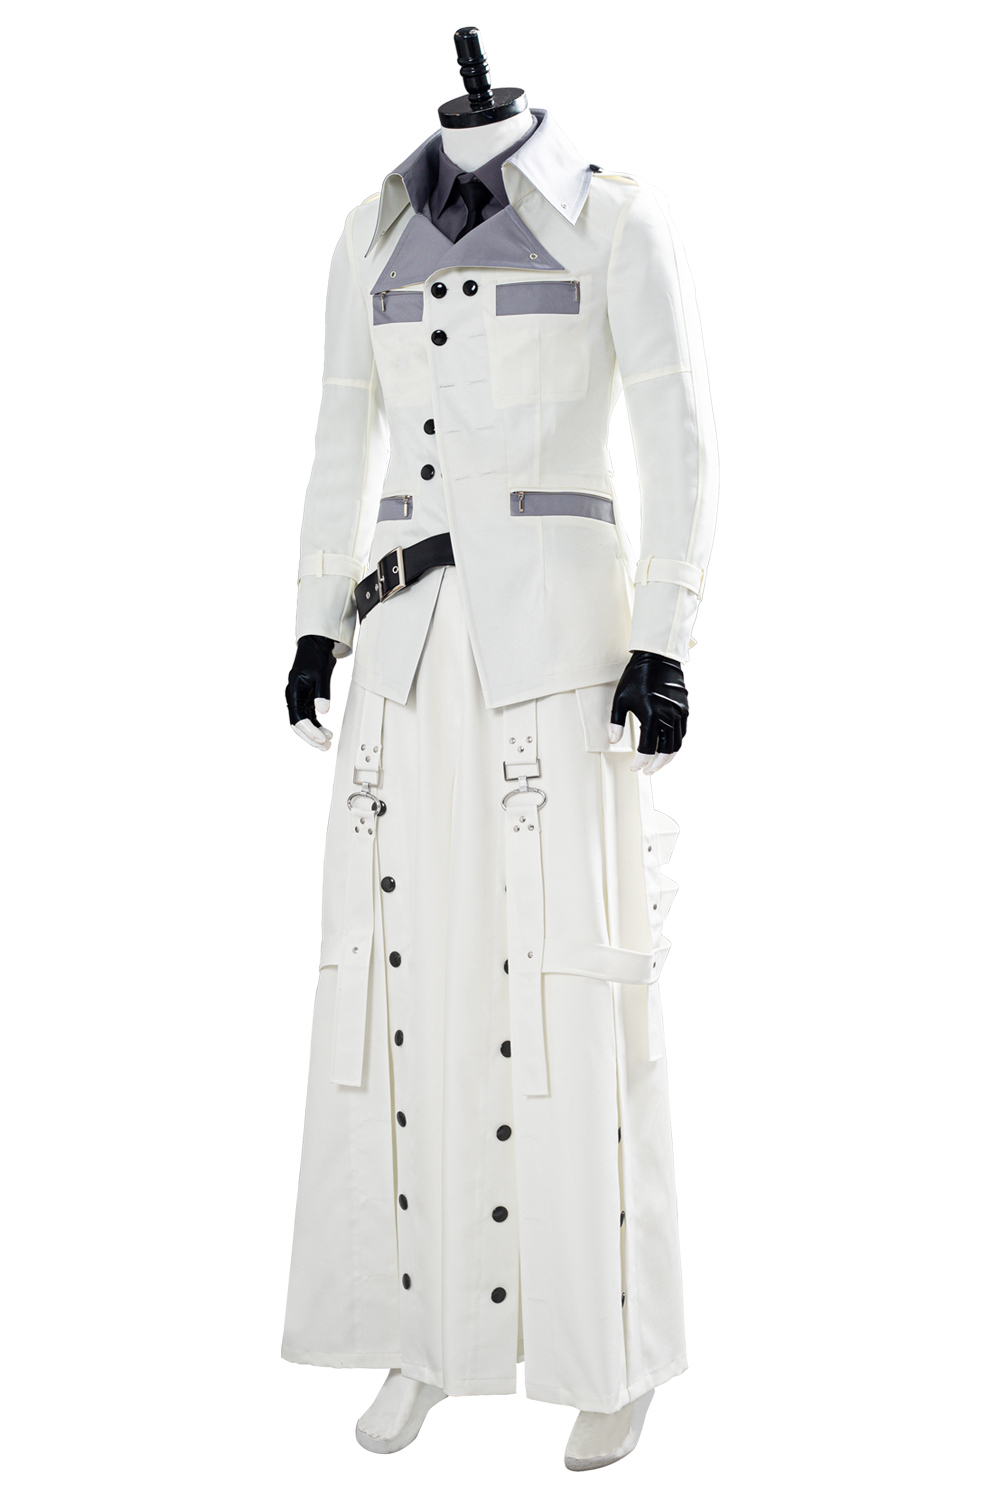 Details about  /Final Fantasy VII Remake Rufus Shinra Cosplay Costume White Outfit Full Set